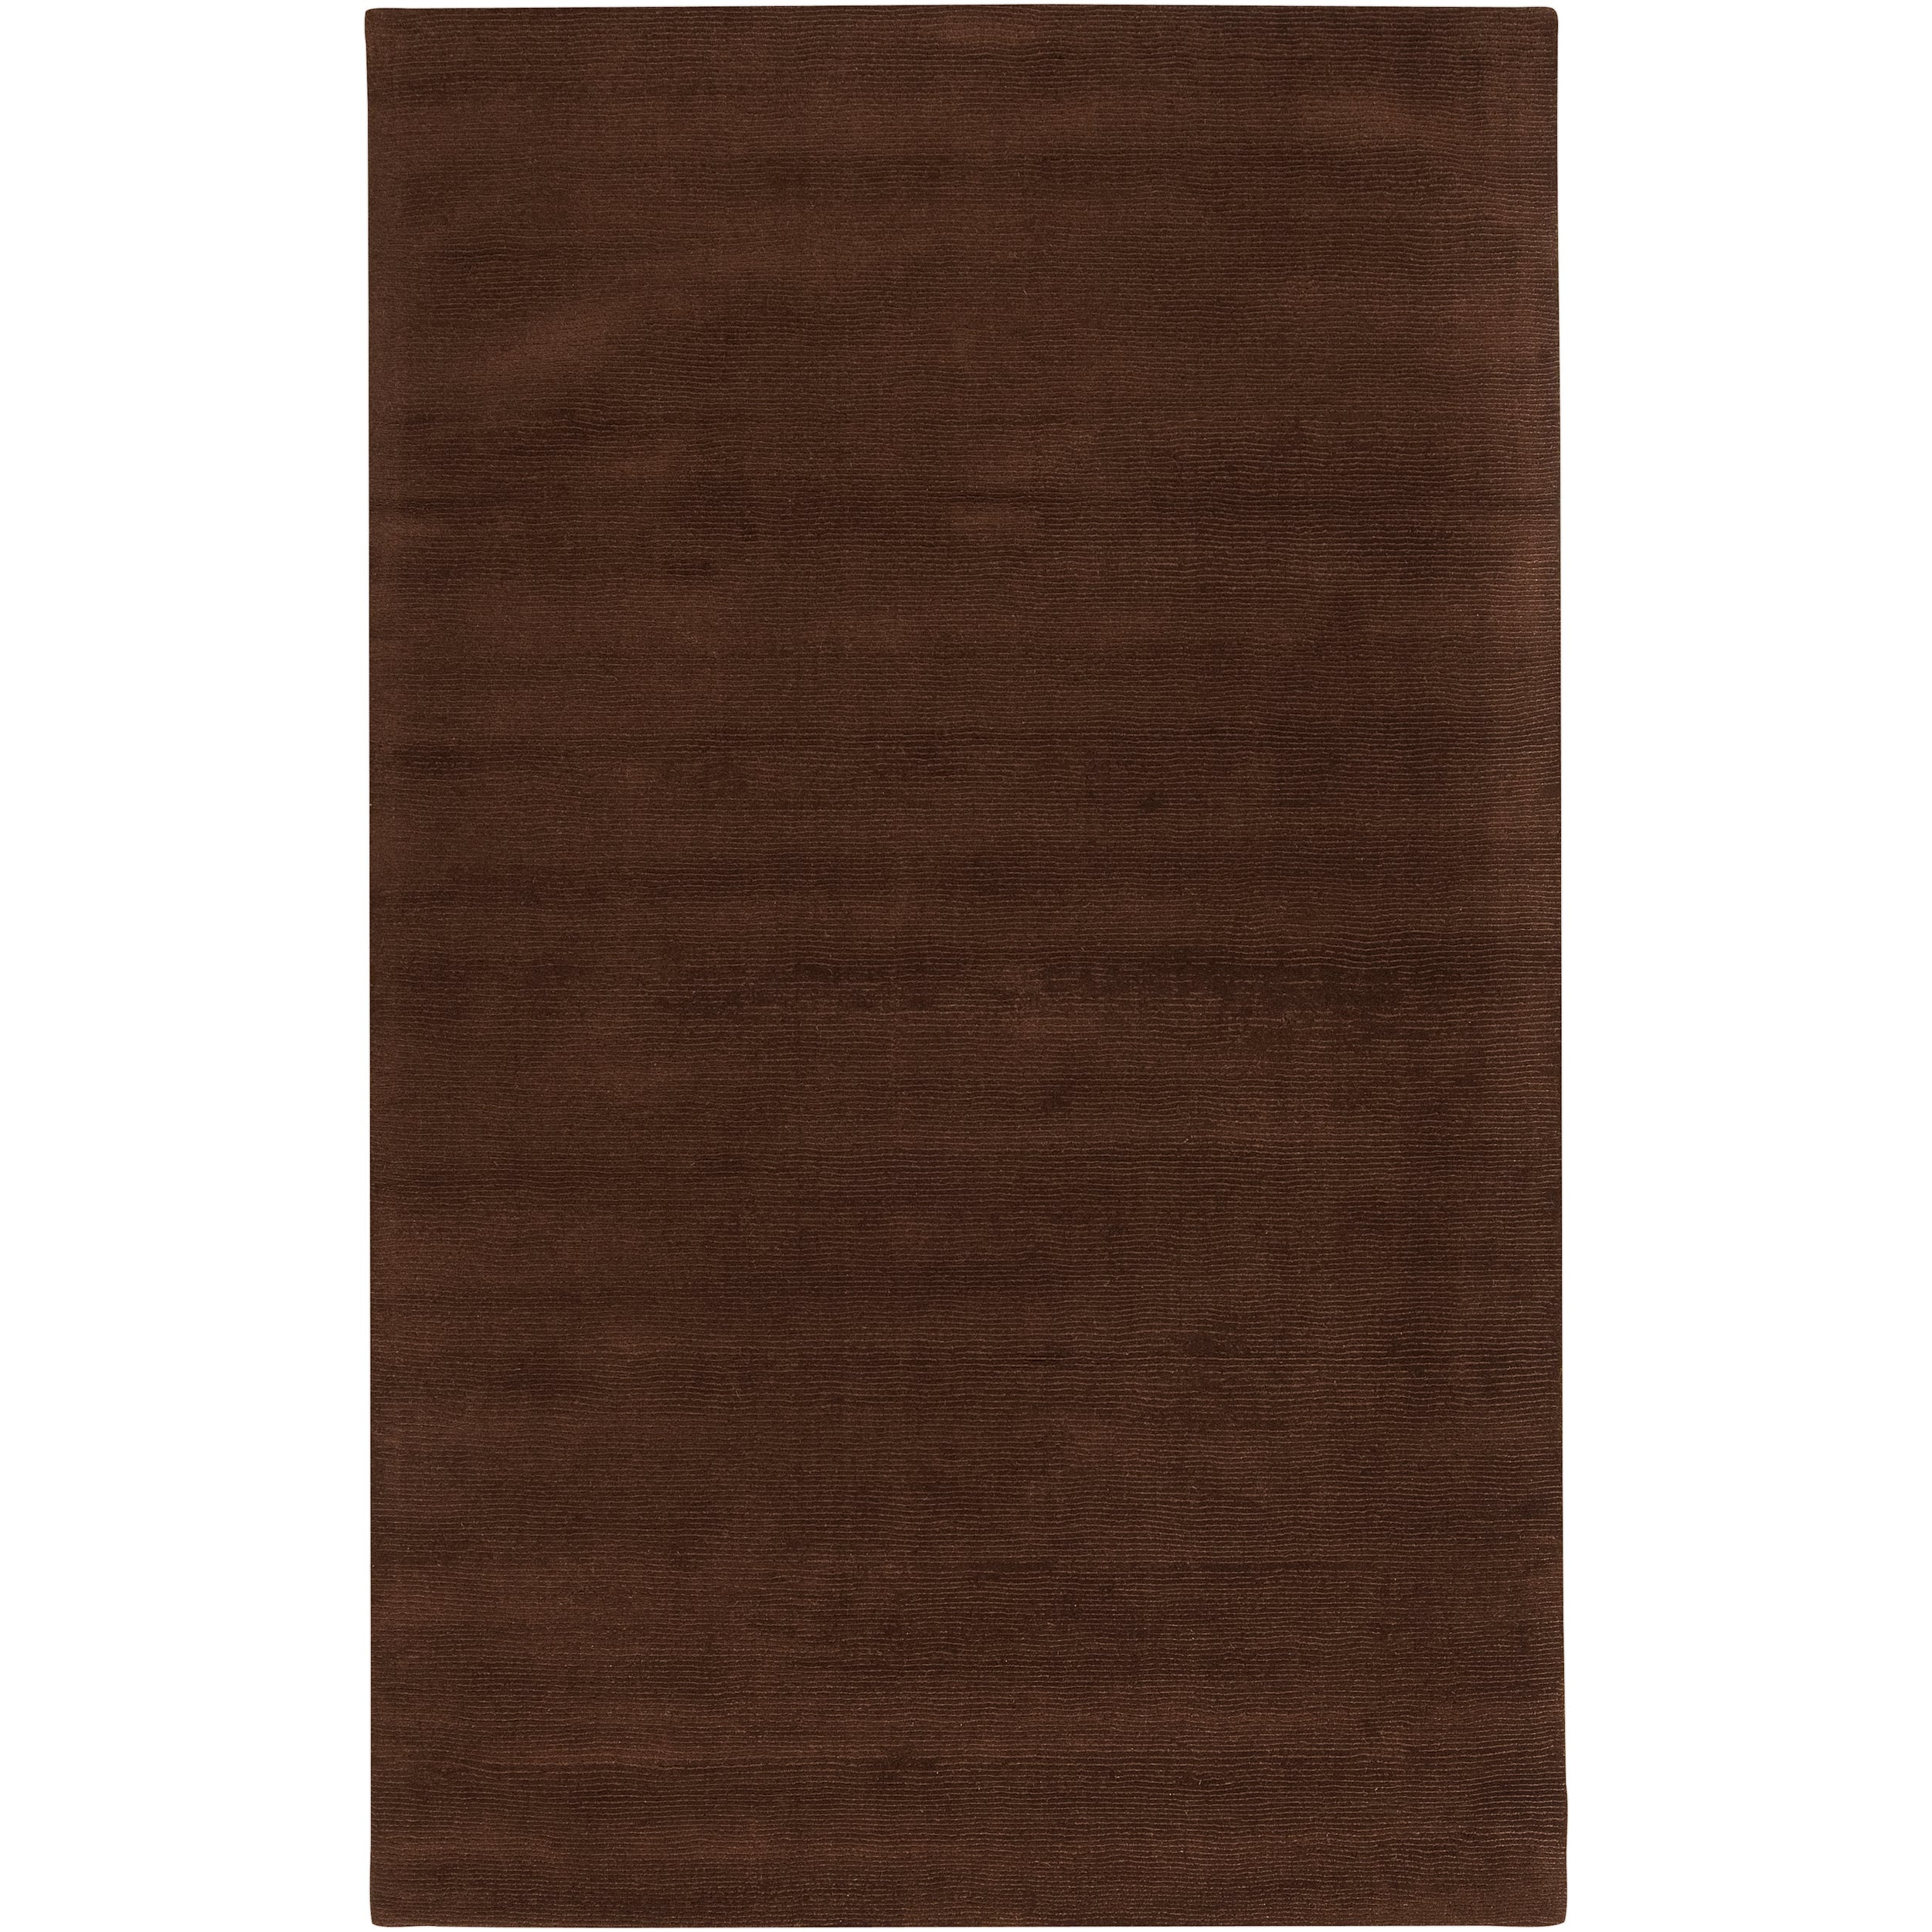 Hand-crafted Brown Solid Casual Nivia Wool Area Rug (8' x 11')